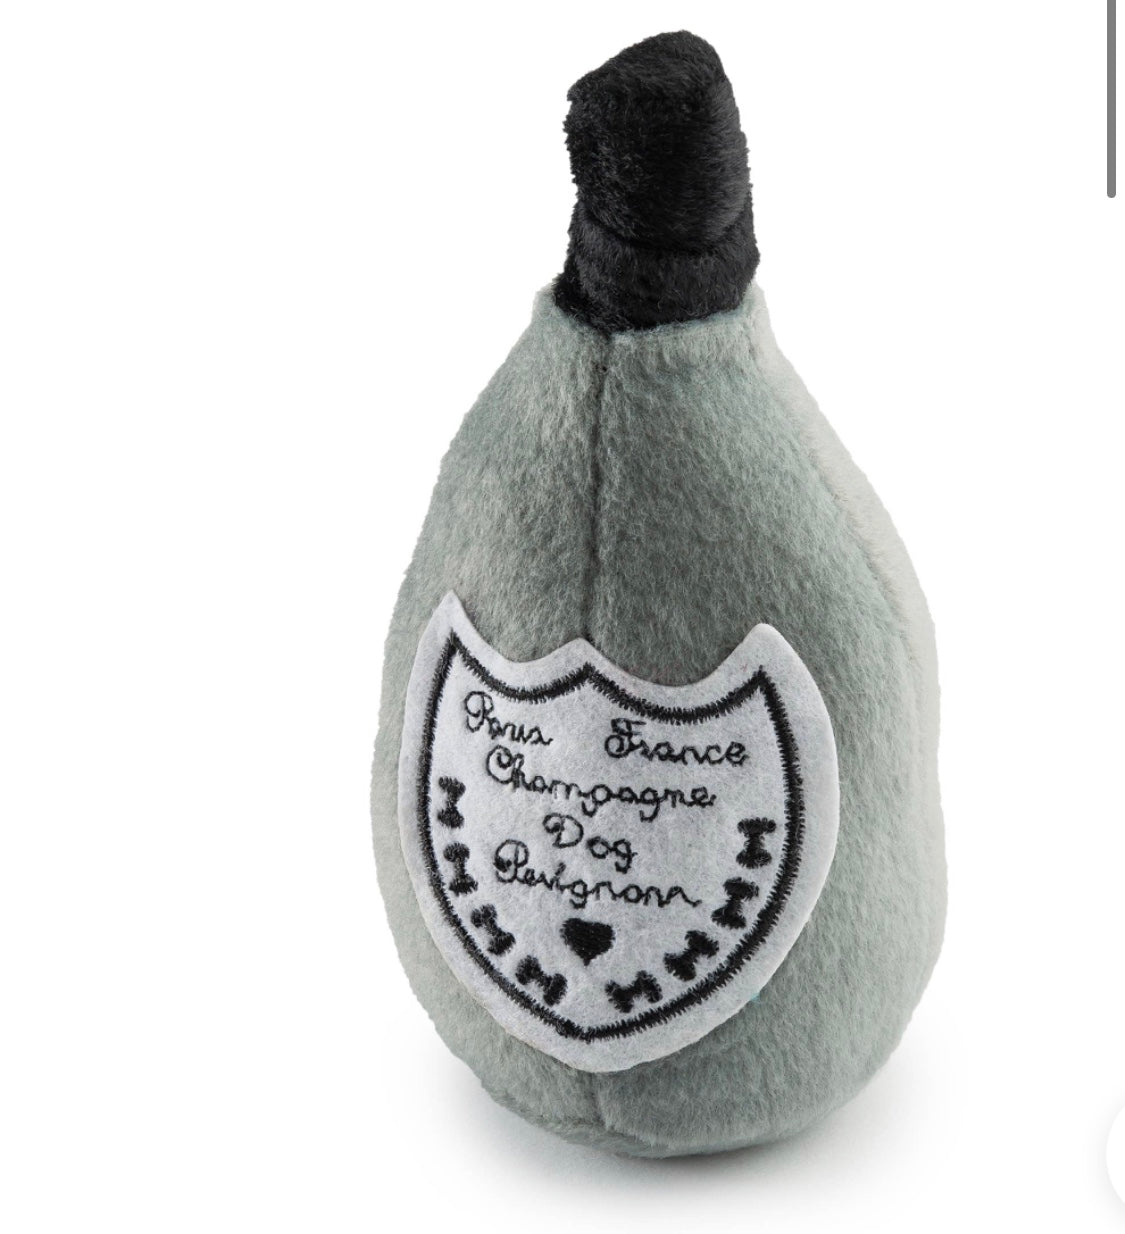 Dog Perignonn Champagne Toy (Small) by Haute Diggity Dog